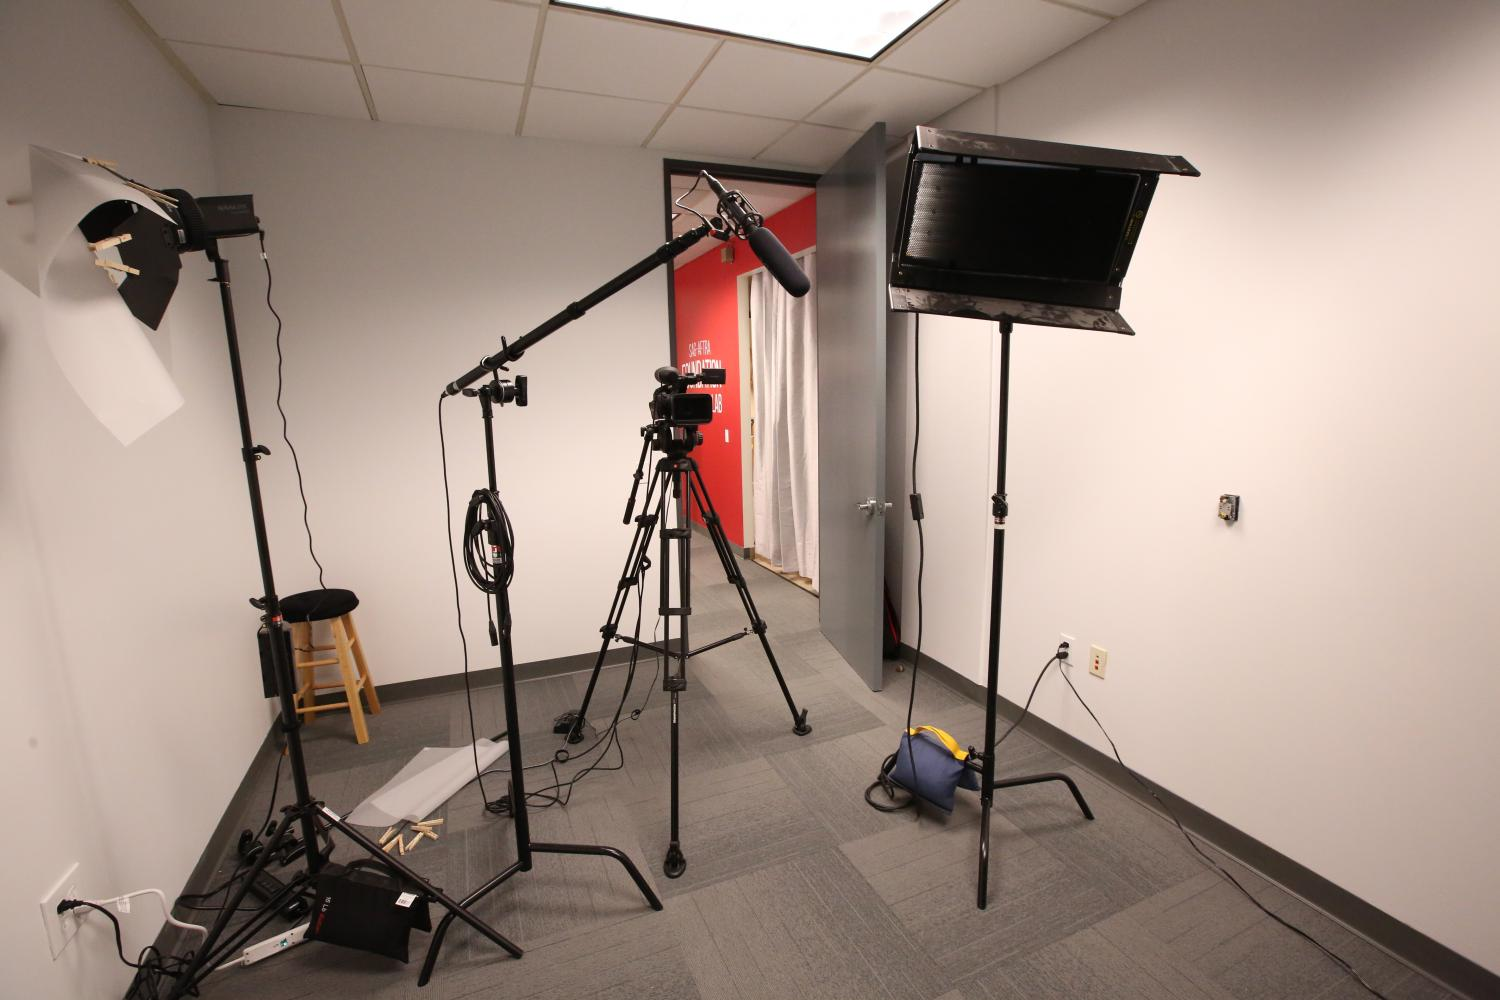 Studeio with microphone, lights and a camera setup for self-taping